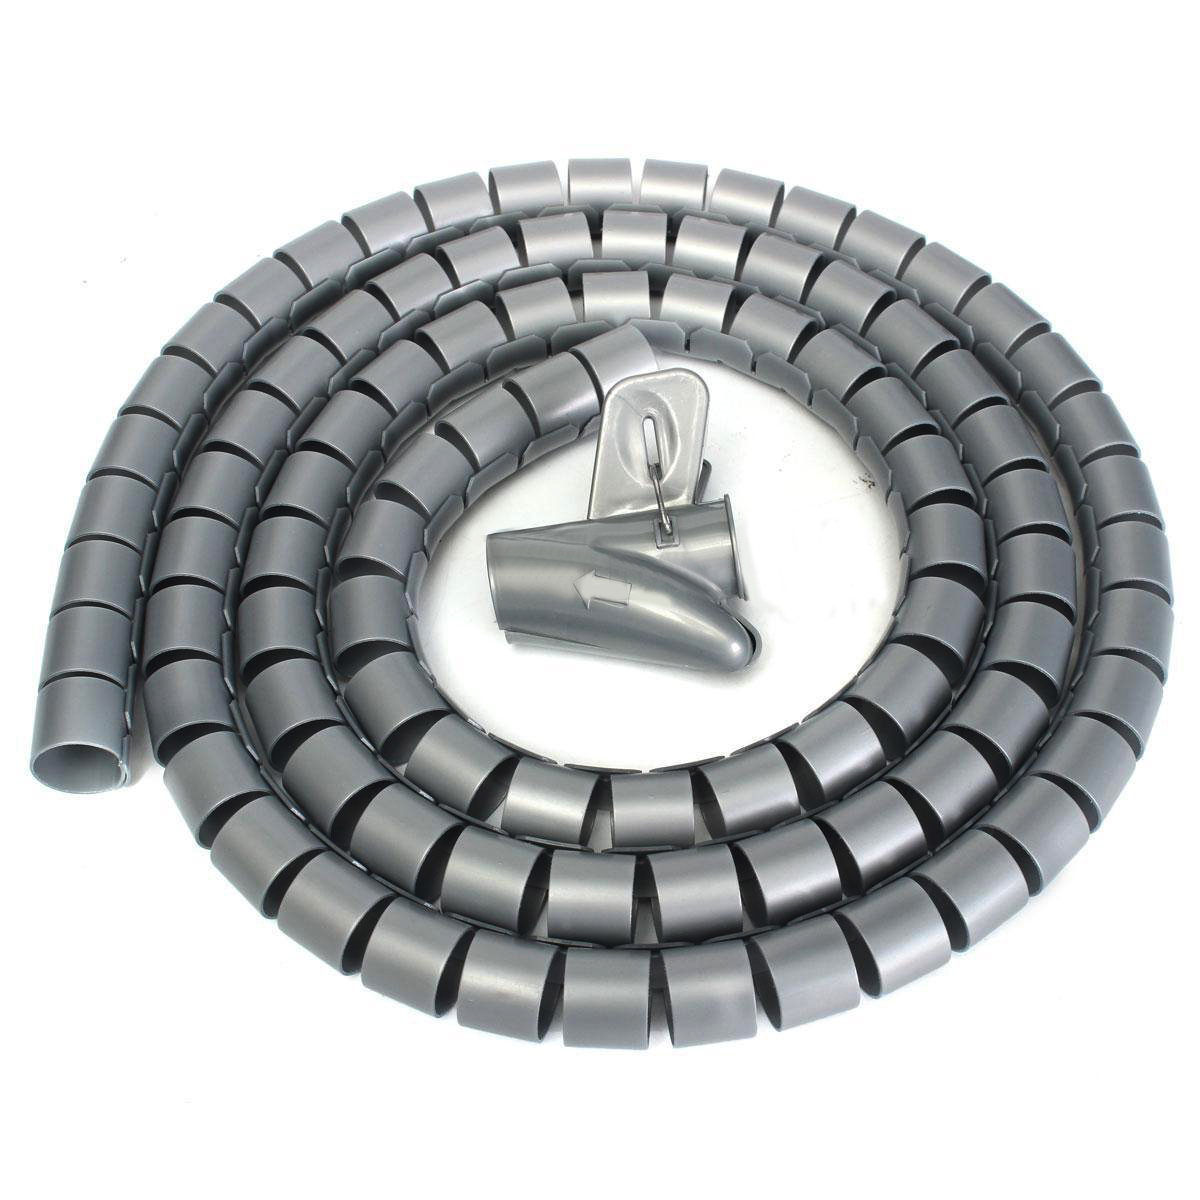 1pc 25mm Spiral Cable Wrapping Bands 2m Length Tidy Cord Wire Banding Loom Storage Organizer Silver